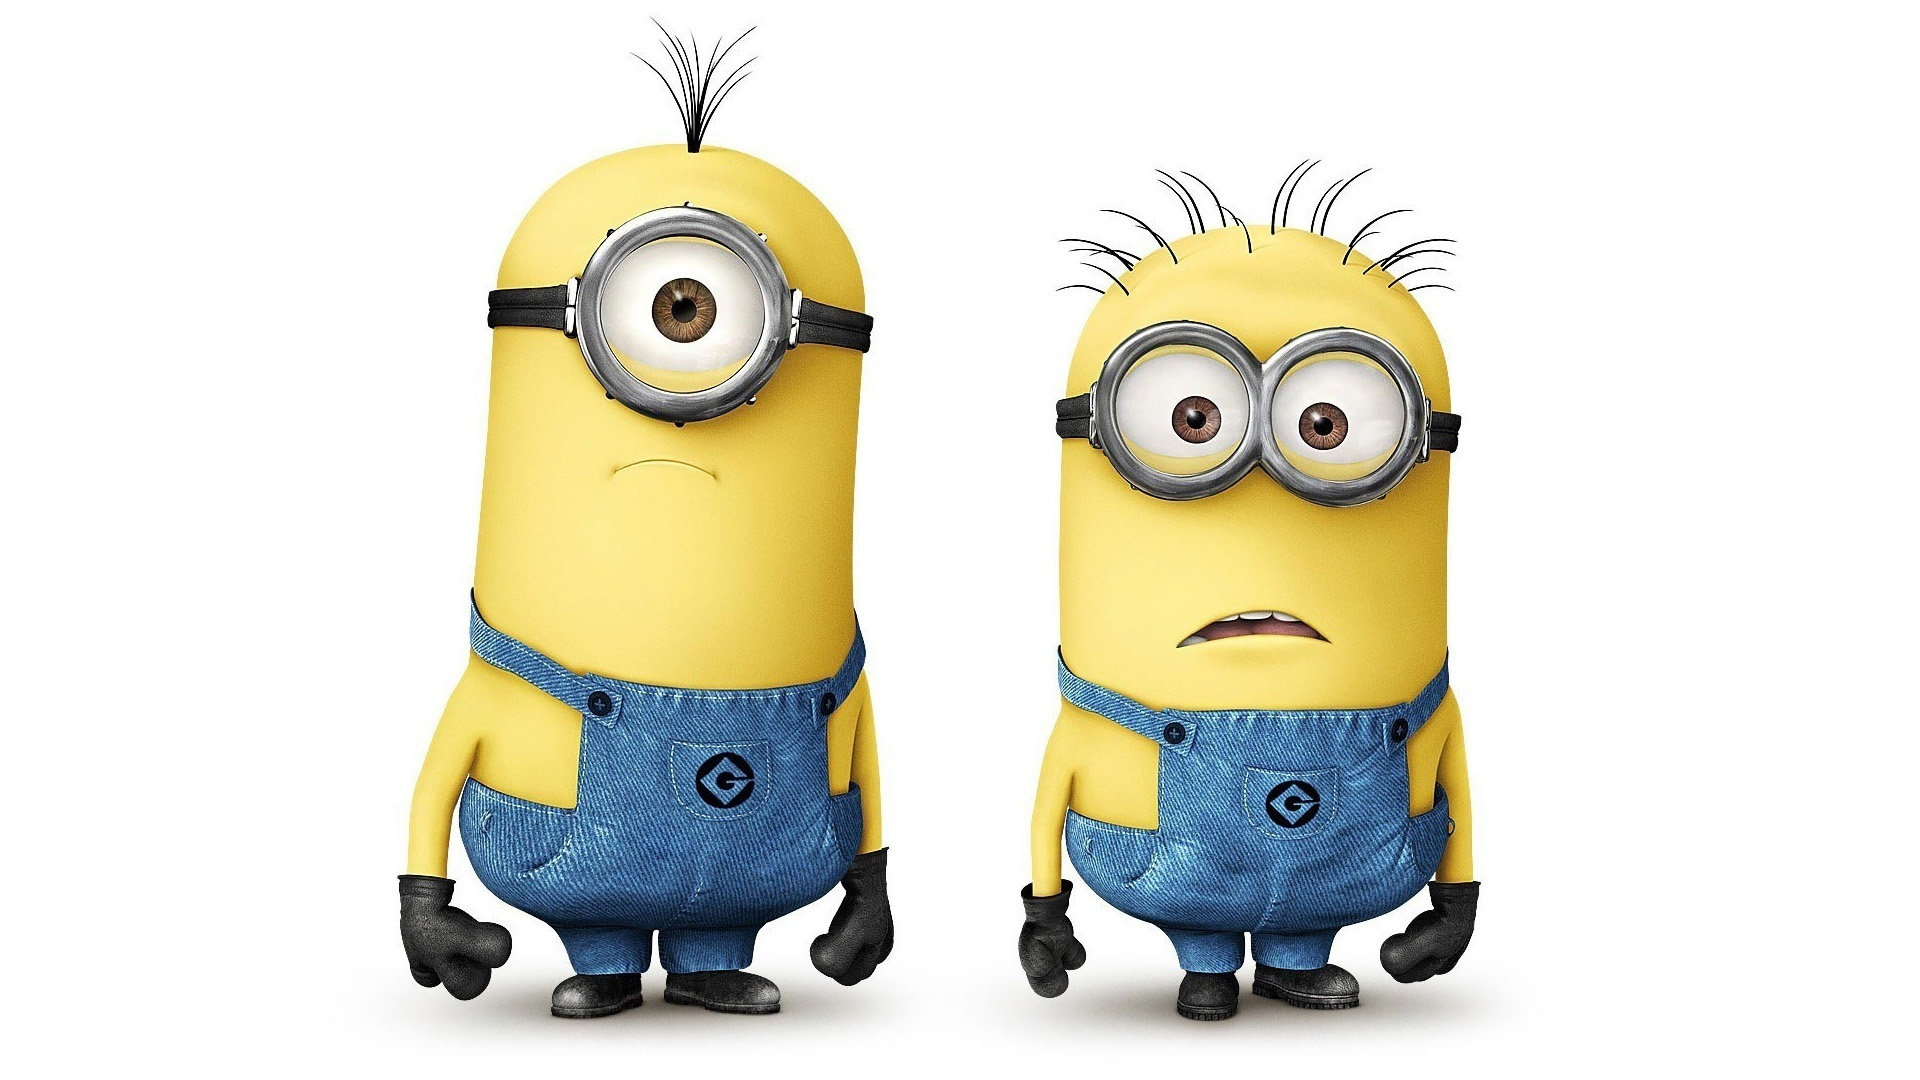 Cartoon District Wallpapers 55 Cute Minion Wallpapers HD for Desktop 1920x1080